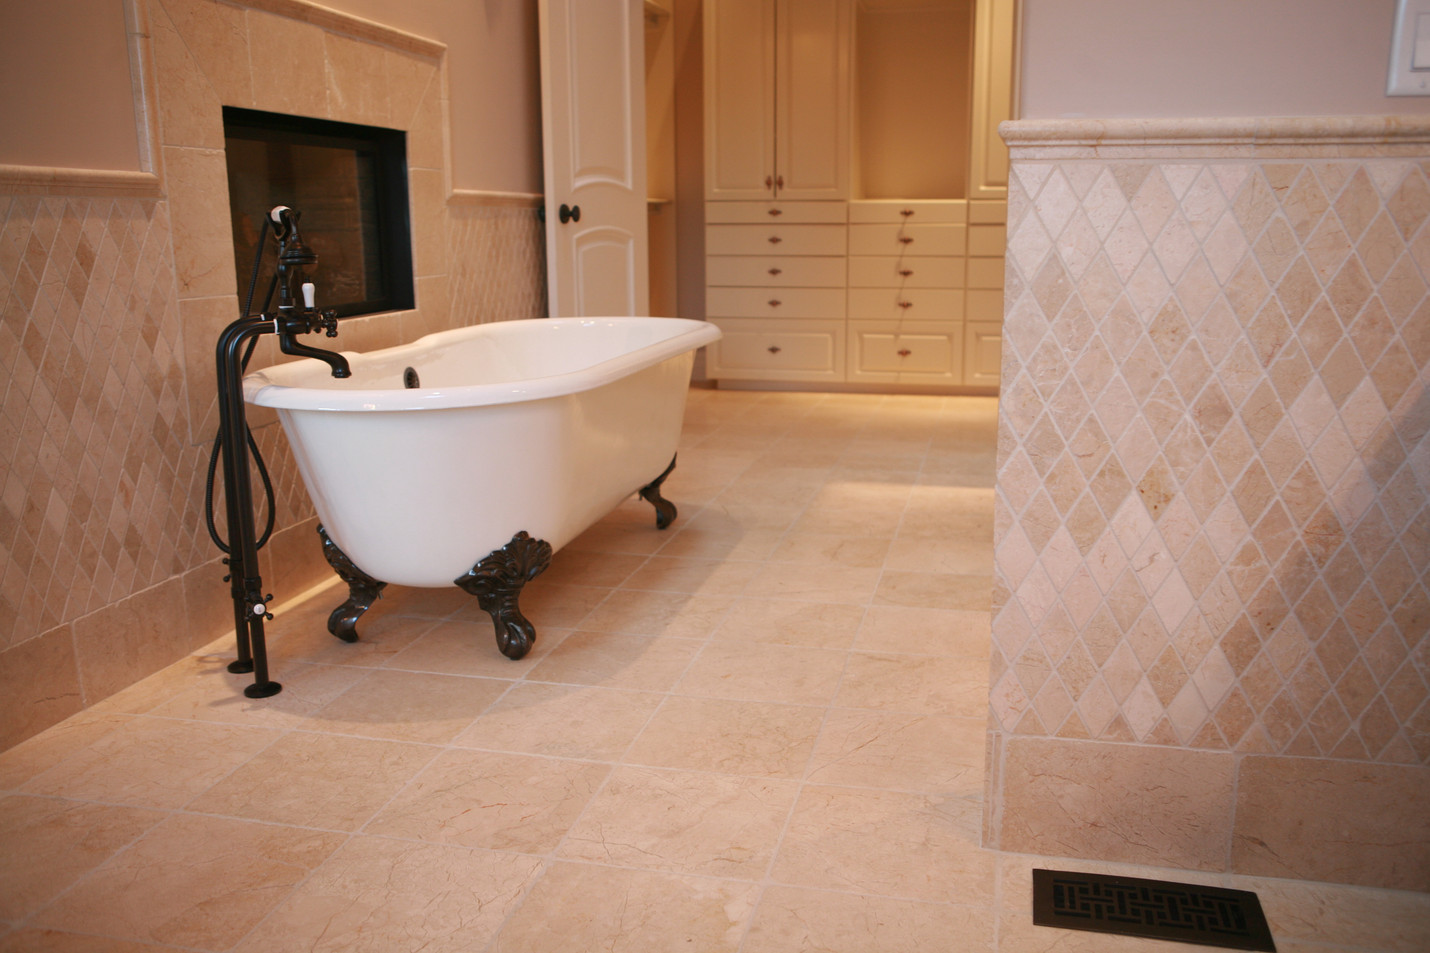 This natural stone bathroom tile is a perfect addition to this master ensuite bathroom. The clawfoot tub and fireplace makes this the perfect retreat.